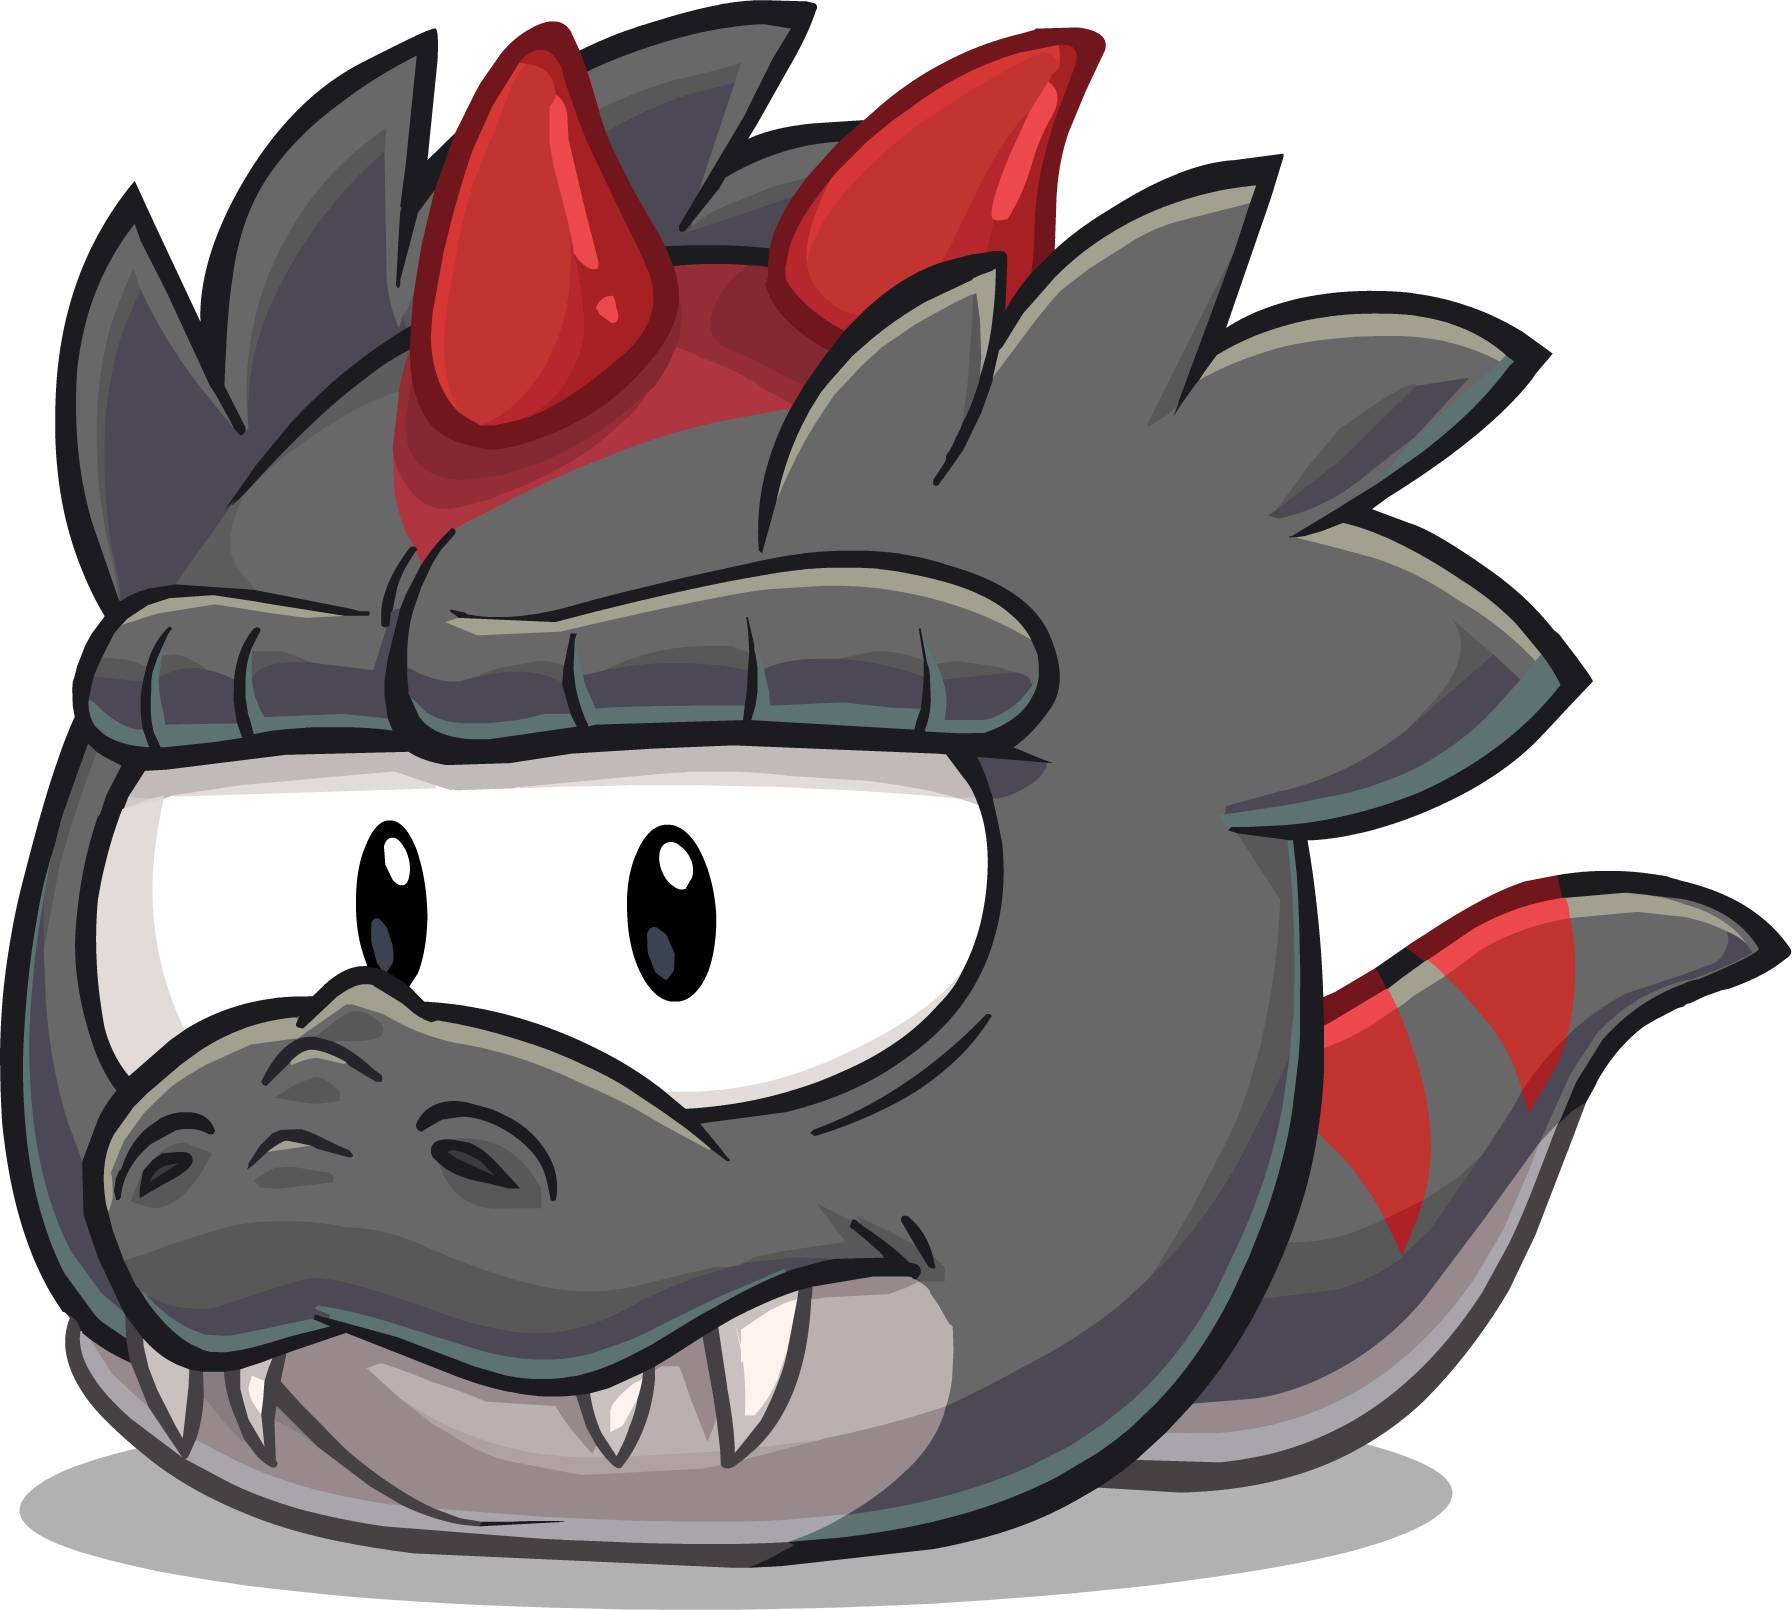 Imagen - BlackTRexPuffle.png | Club Penguin Wiki | FANDOM powered by ...